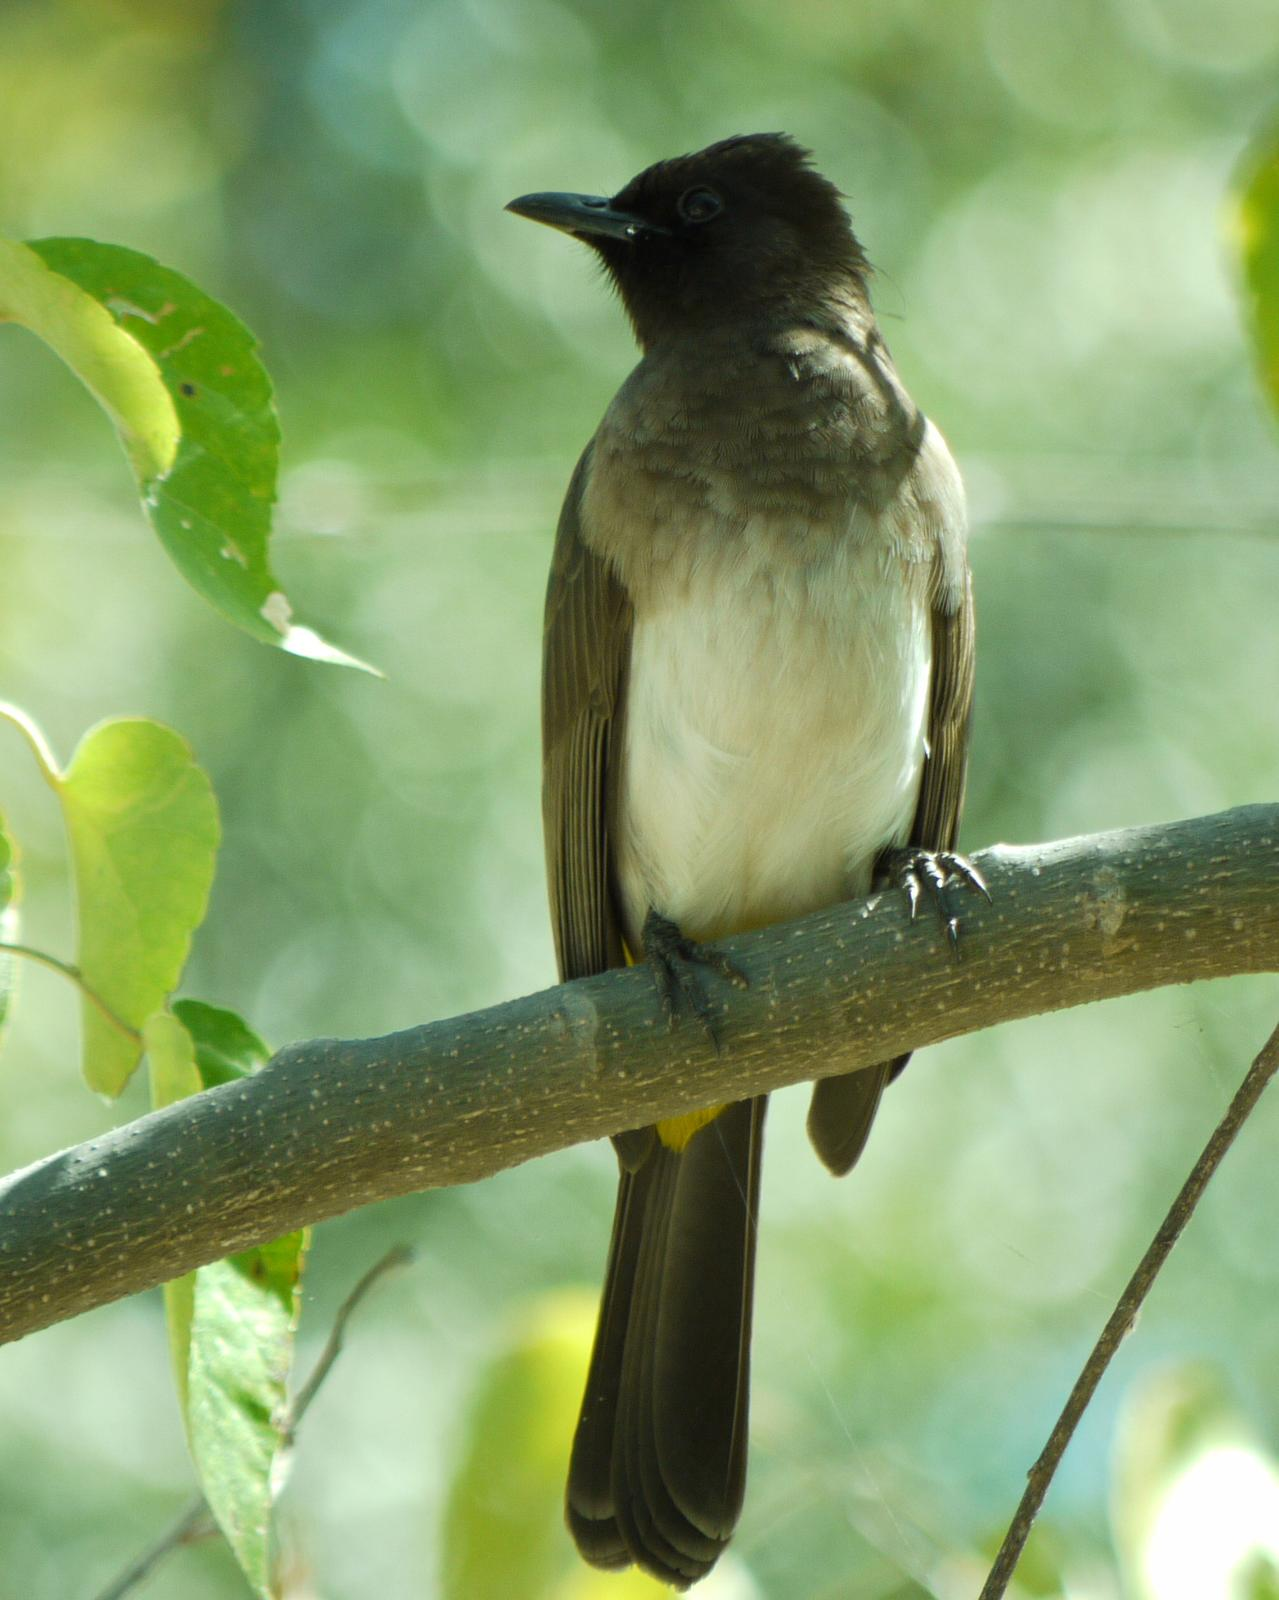 Common Bulbul Photo by Peter Lowe